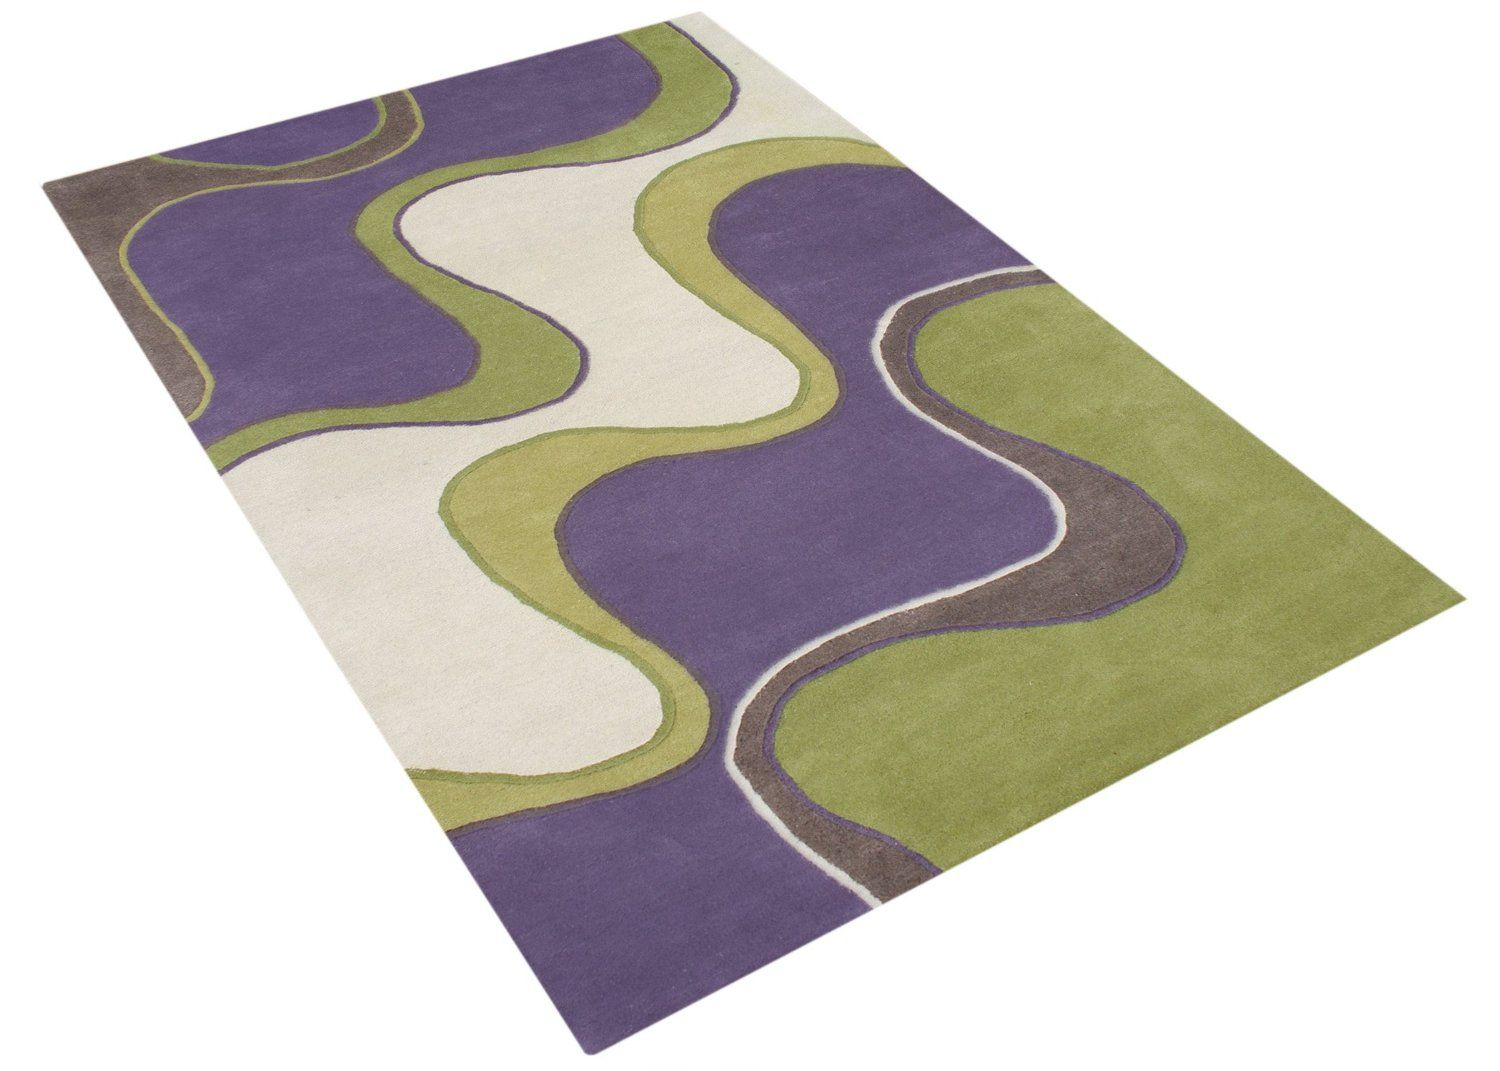 Check Out This Por Collection Of Funky Purple And Green Area Rugs Combine The Wisdom